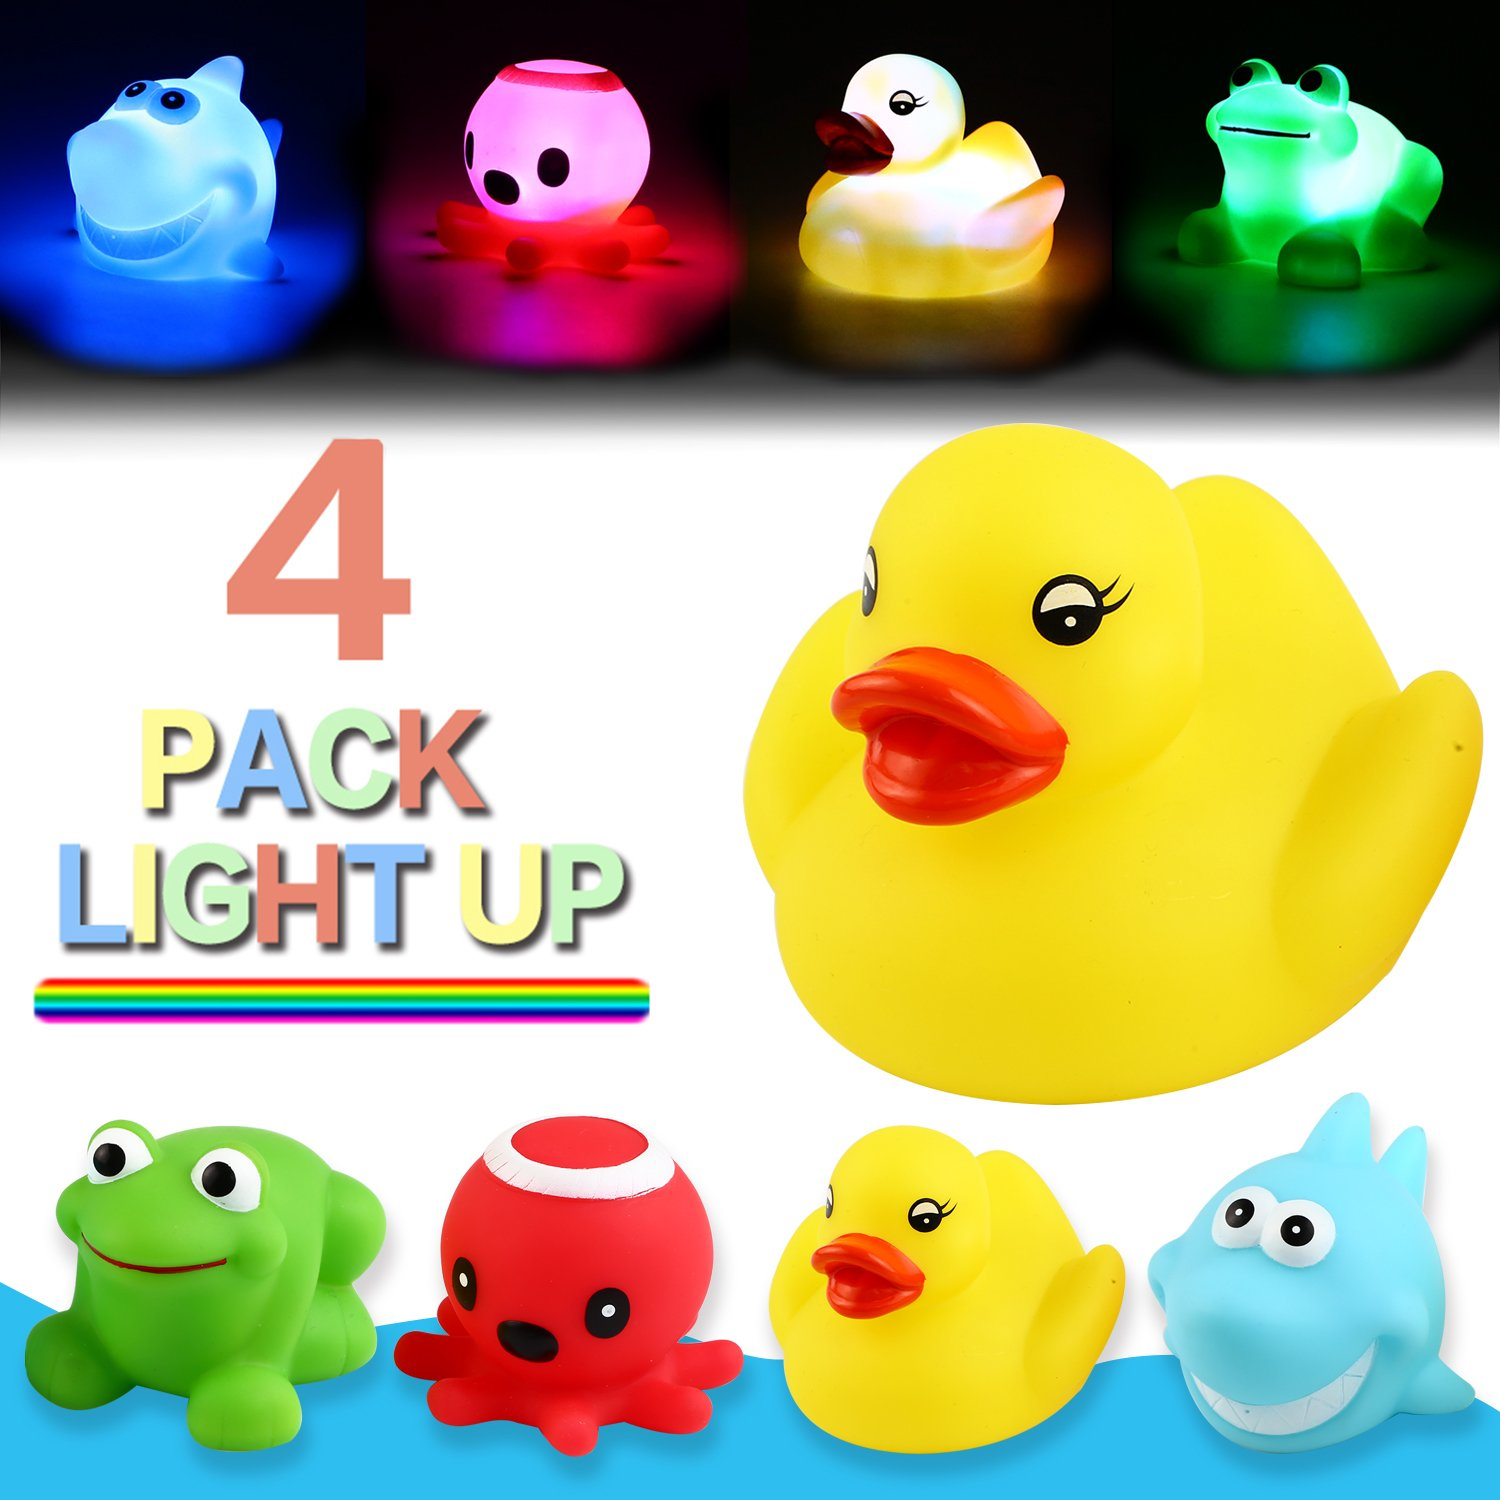 Best light up bath toys for toddlers | Amazon.com